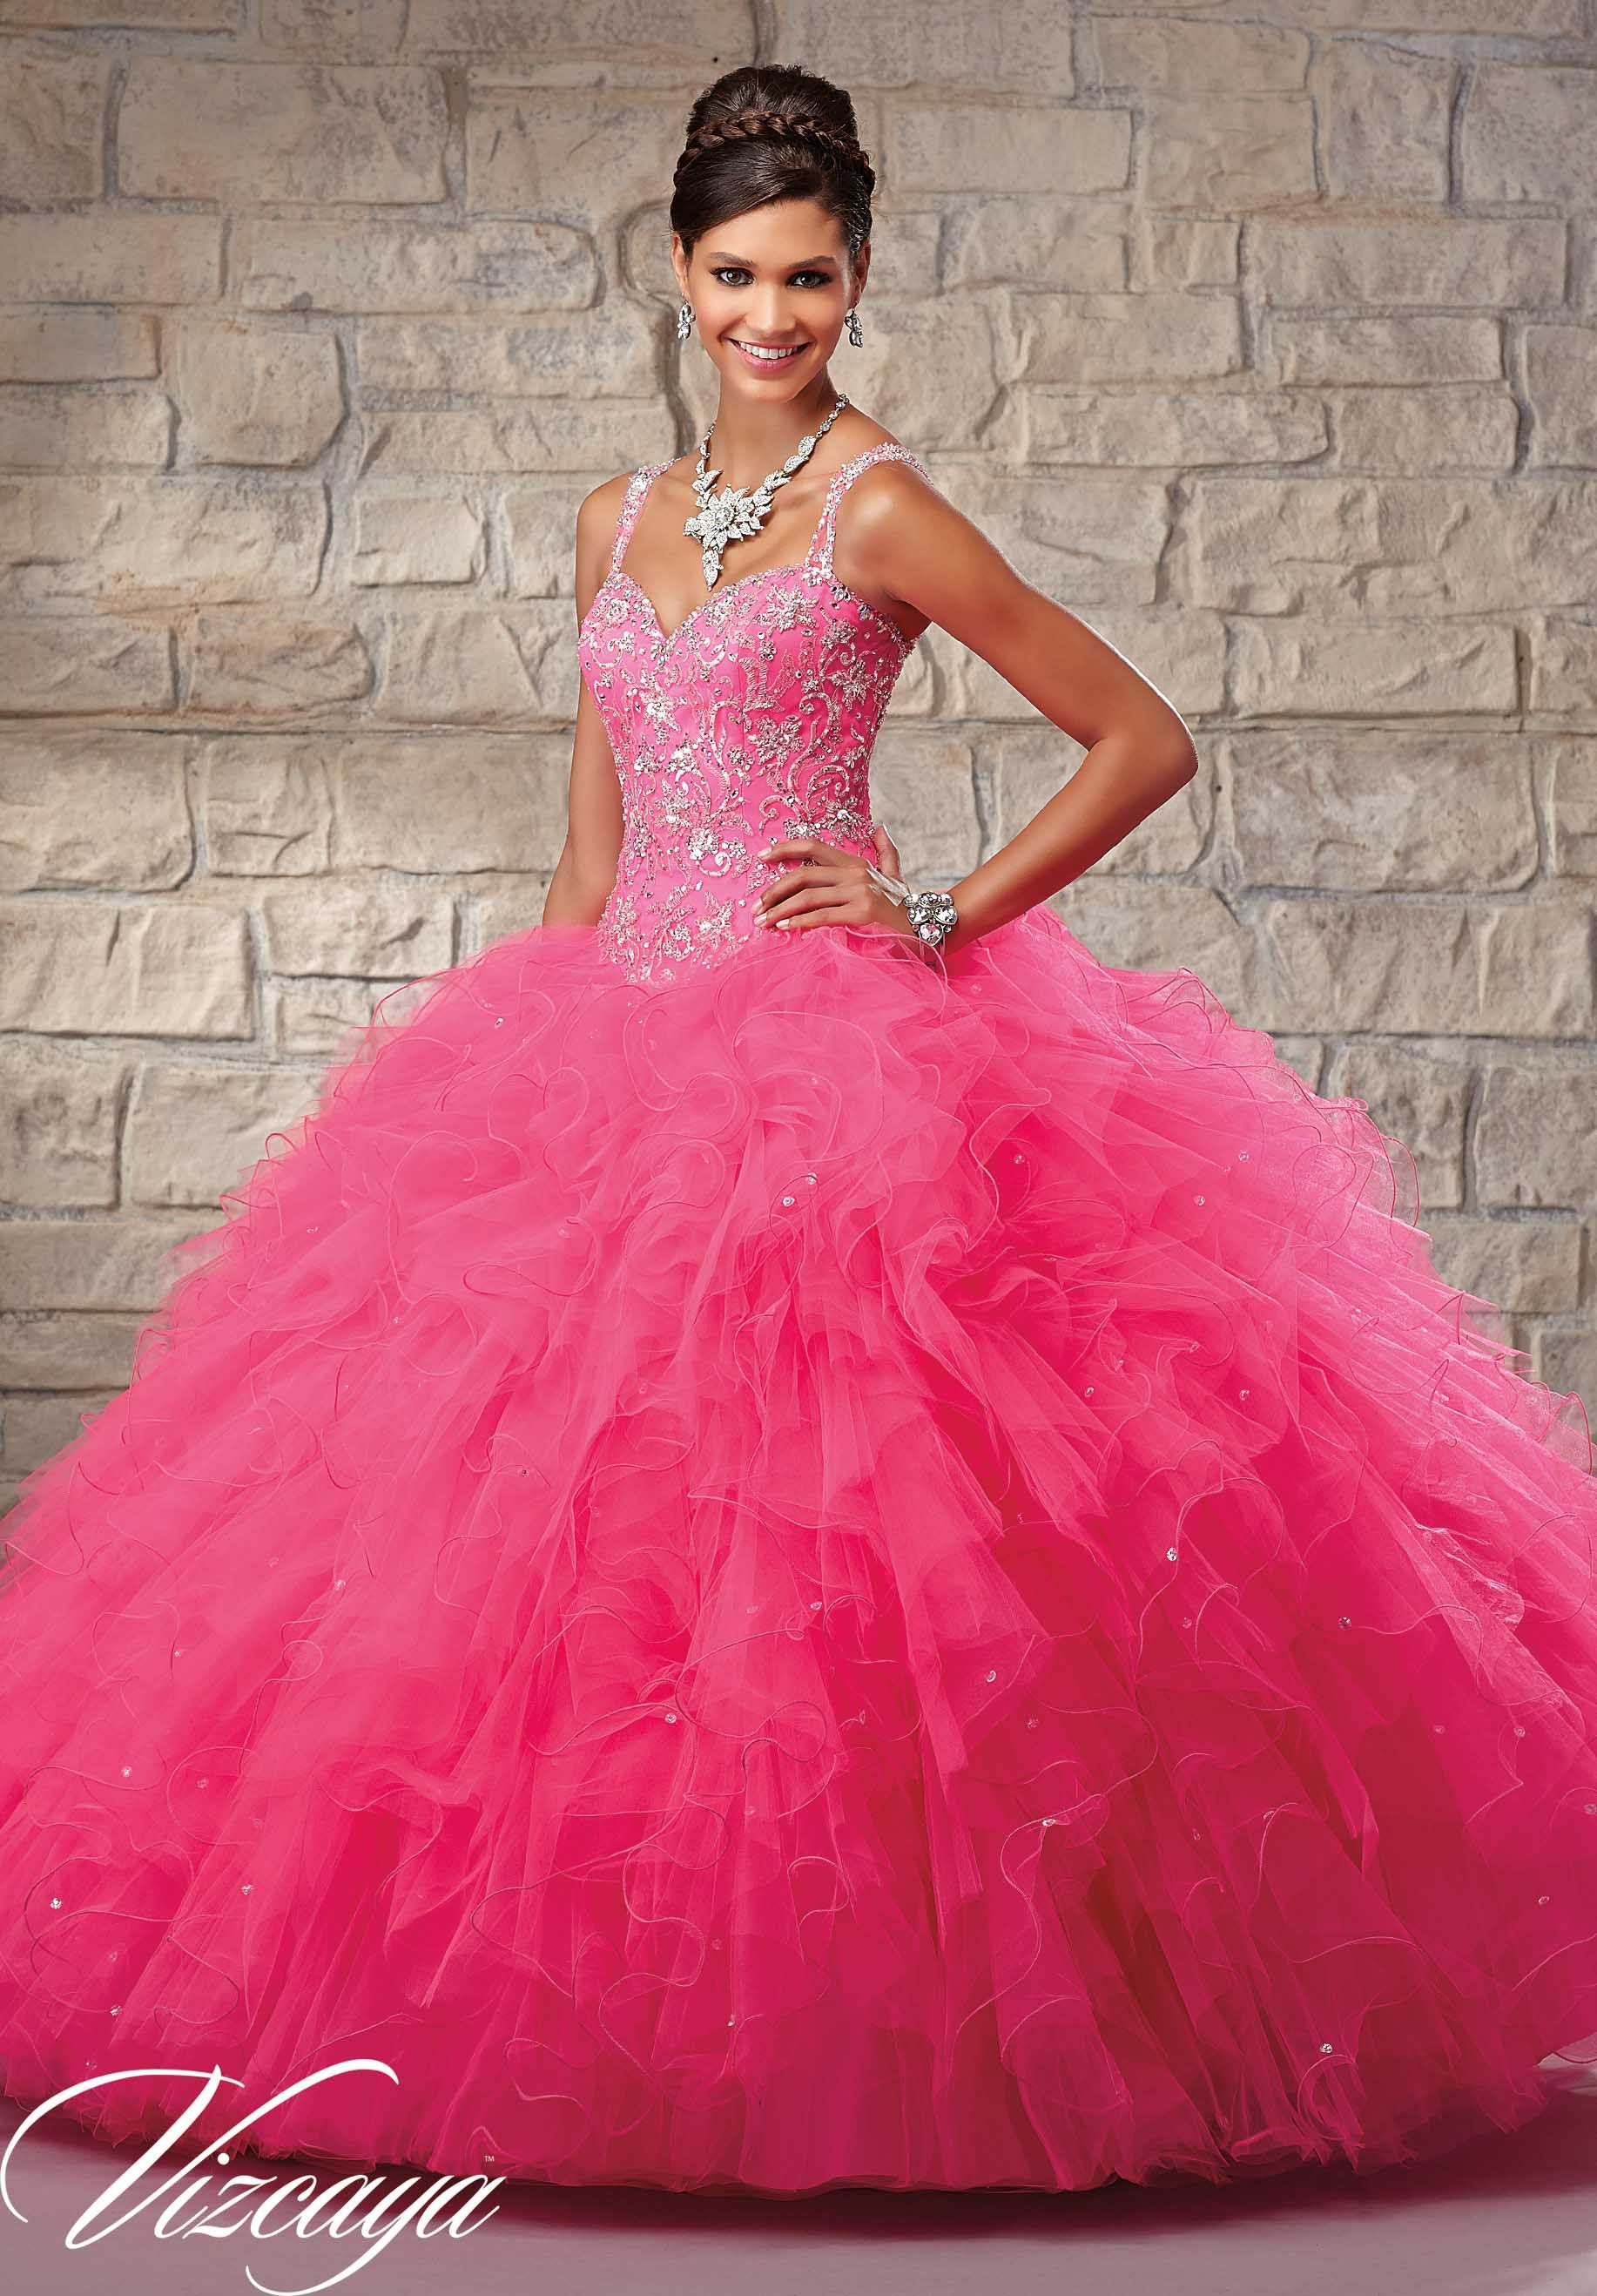 Adelles Quinceanera and Bridal! 1931 E. Ben White Blvd. - Suite 800 ...